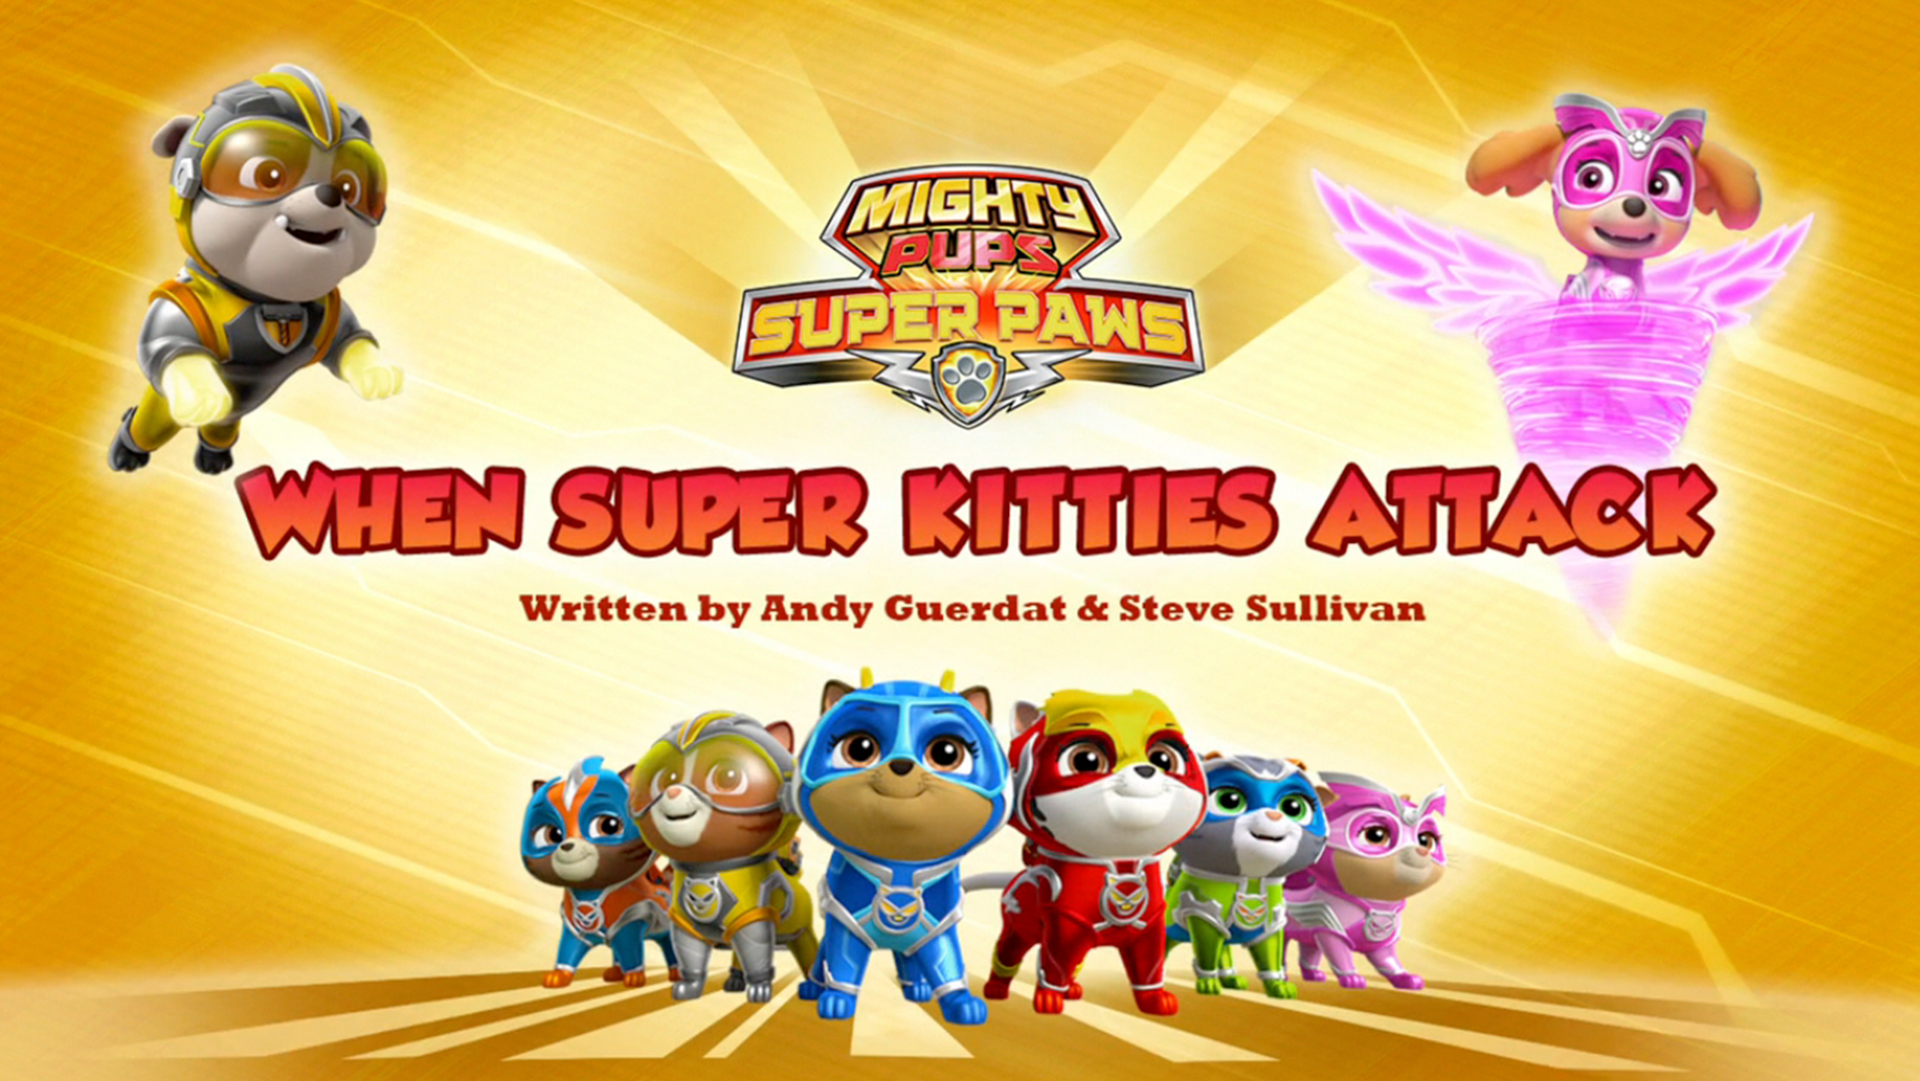 Mighty Pups, Super Paws: When Super Kitties Attack